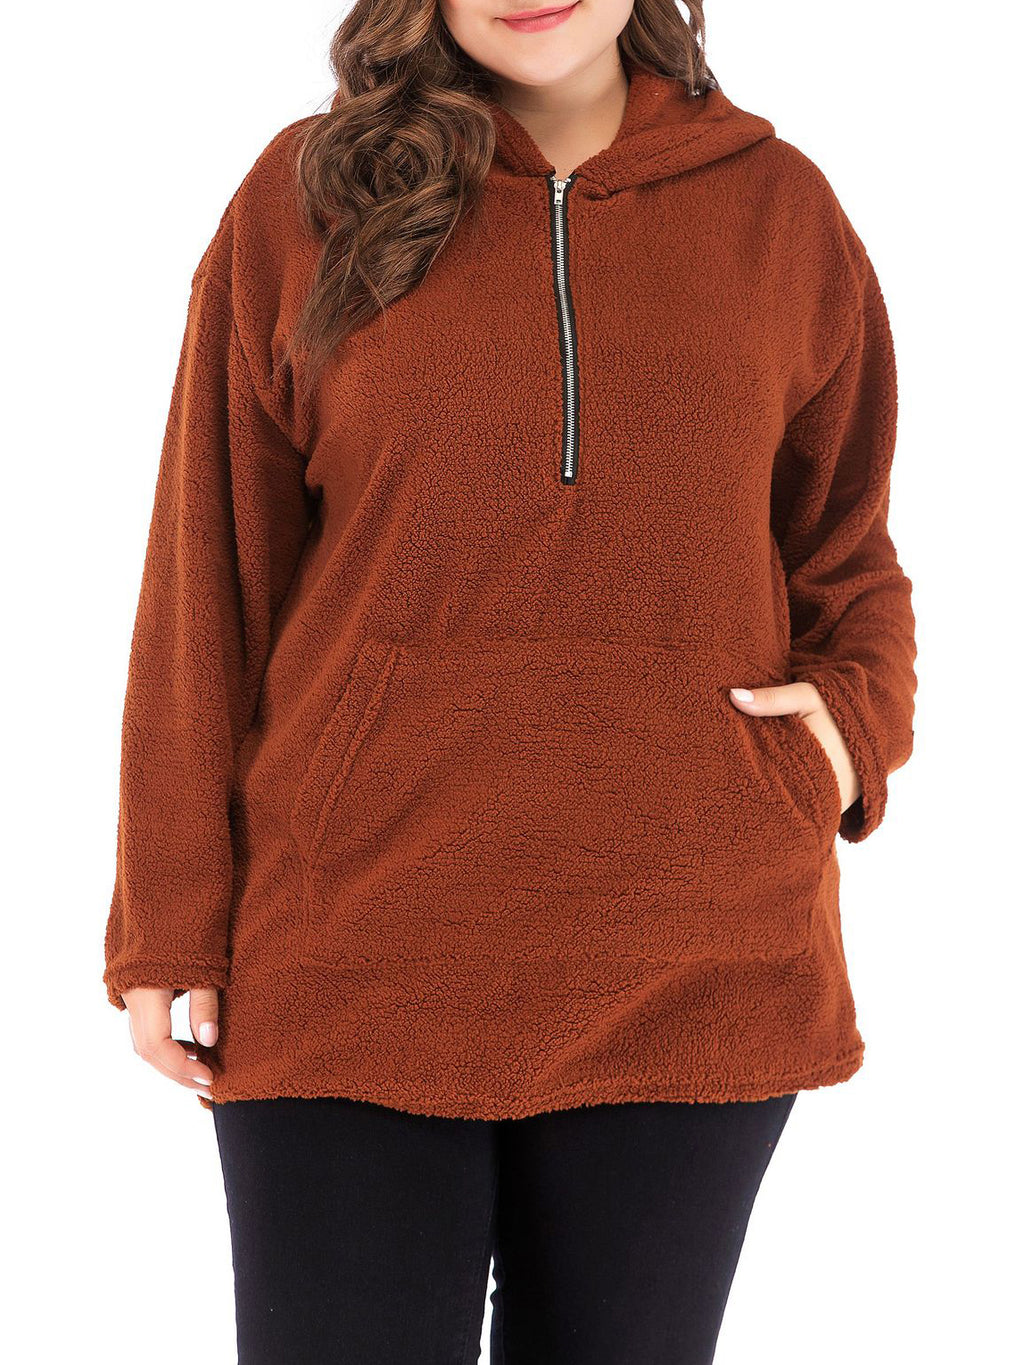 Long-sleeved Hooded Lamb Hair Large Size Sweater